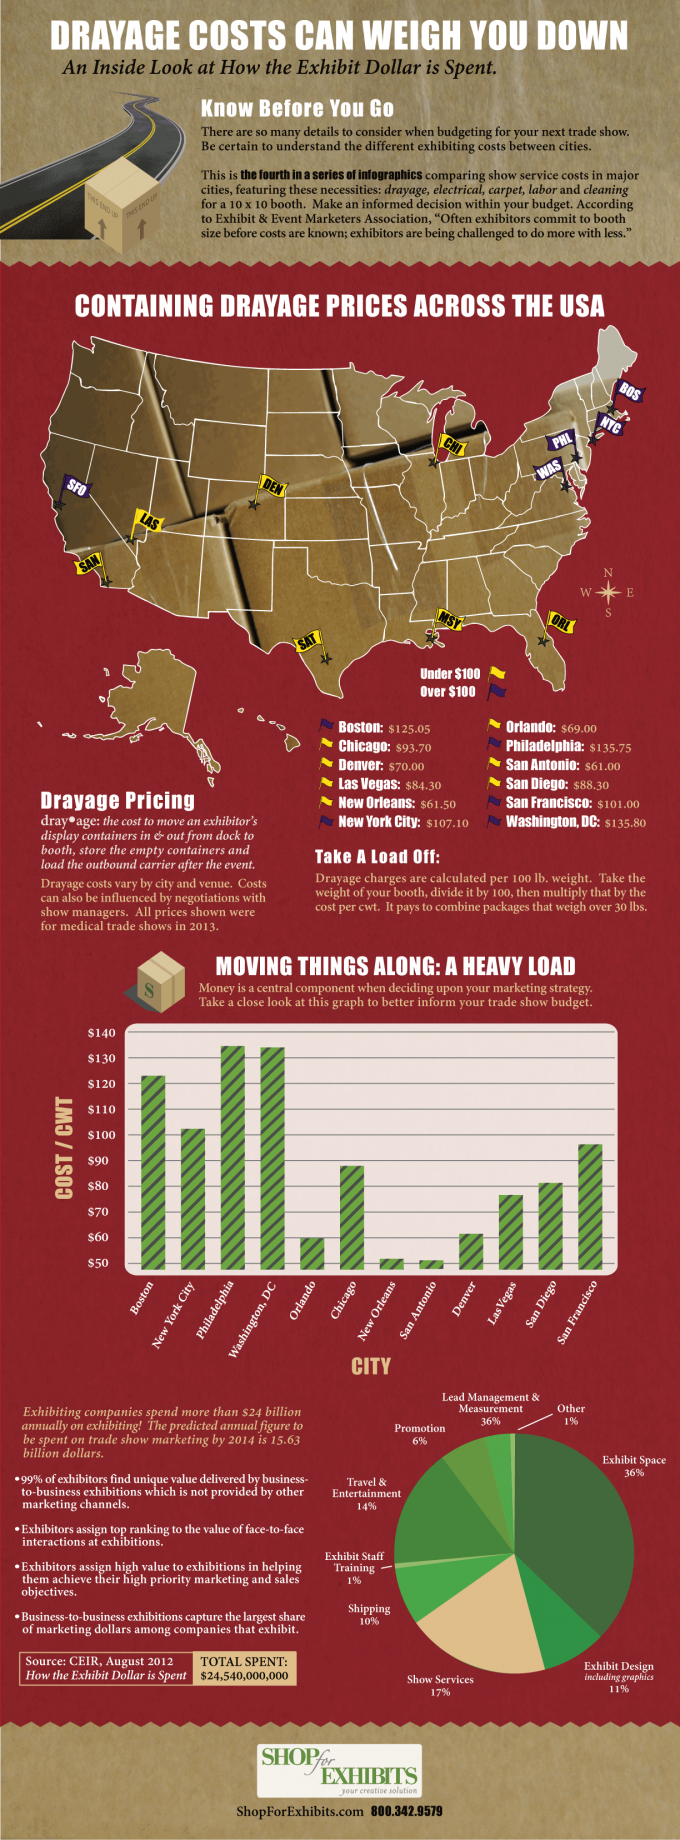 Trade Show Drayage Costs Infographic